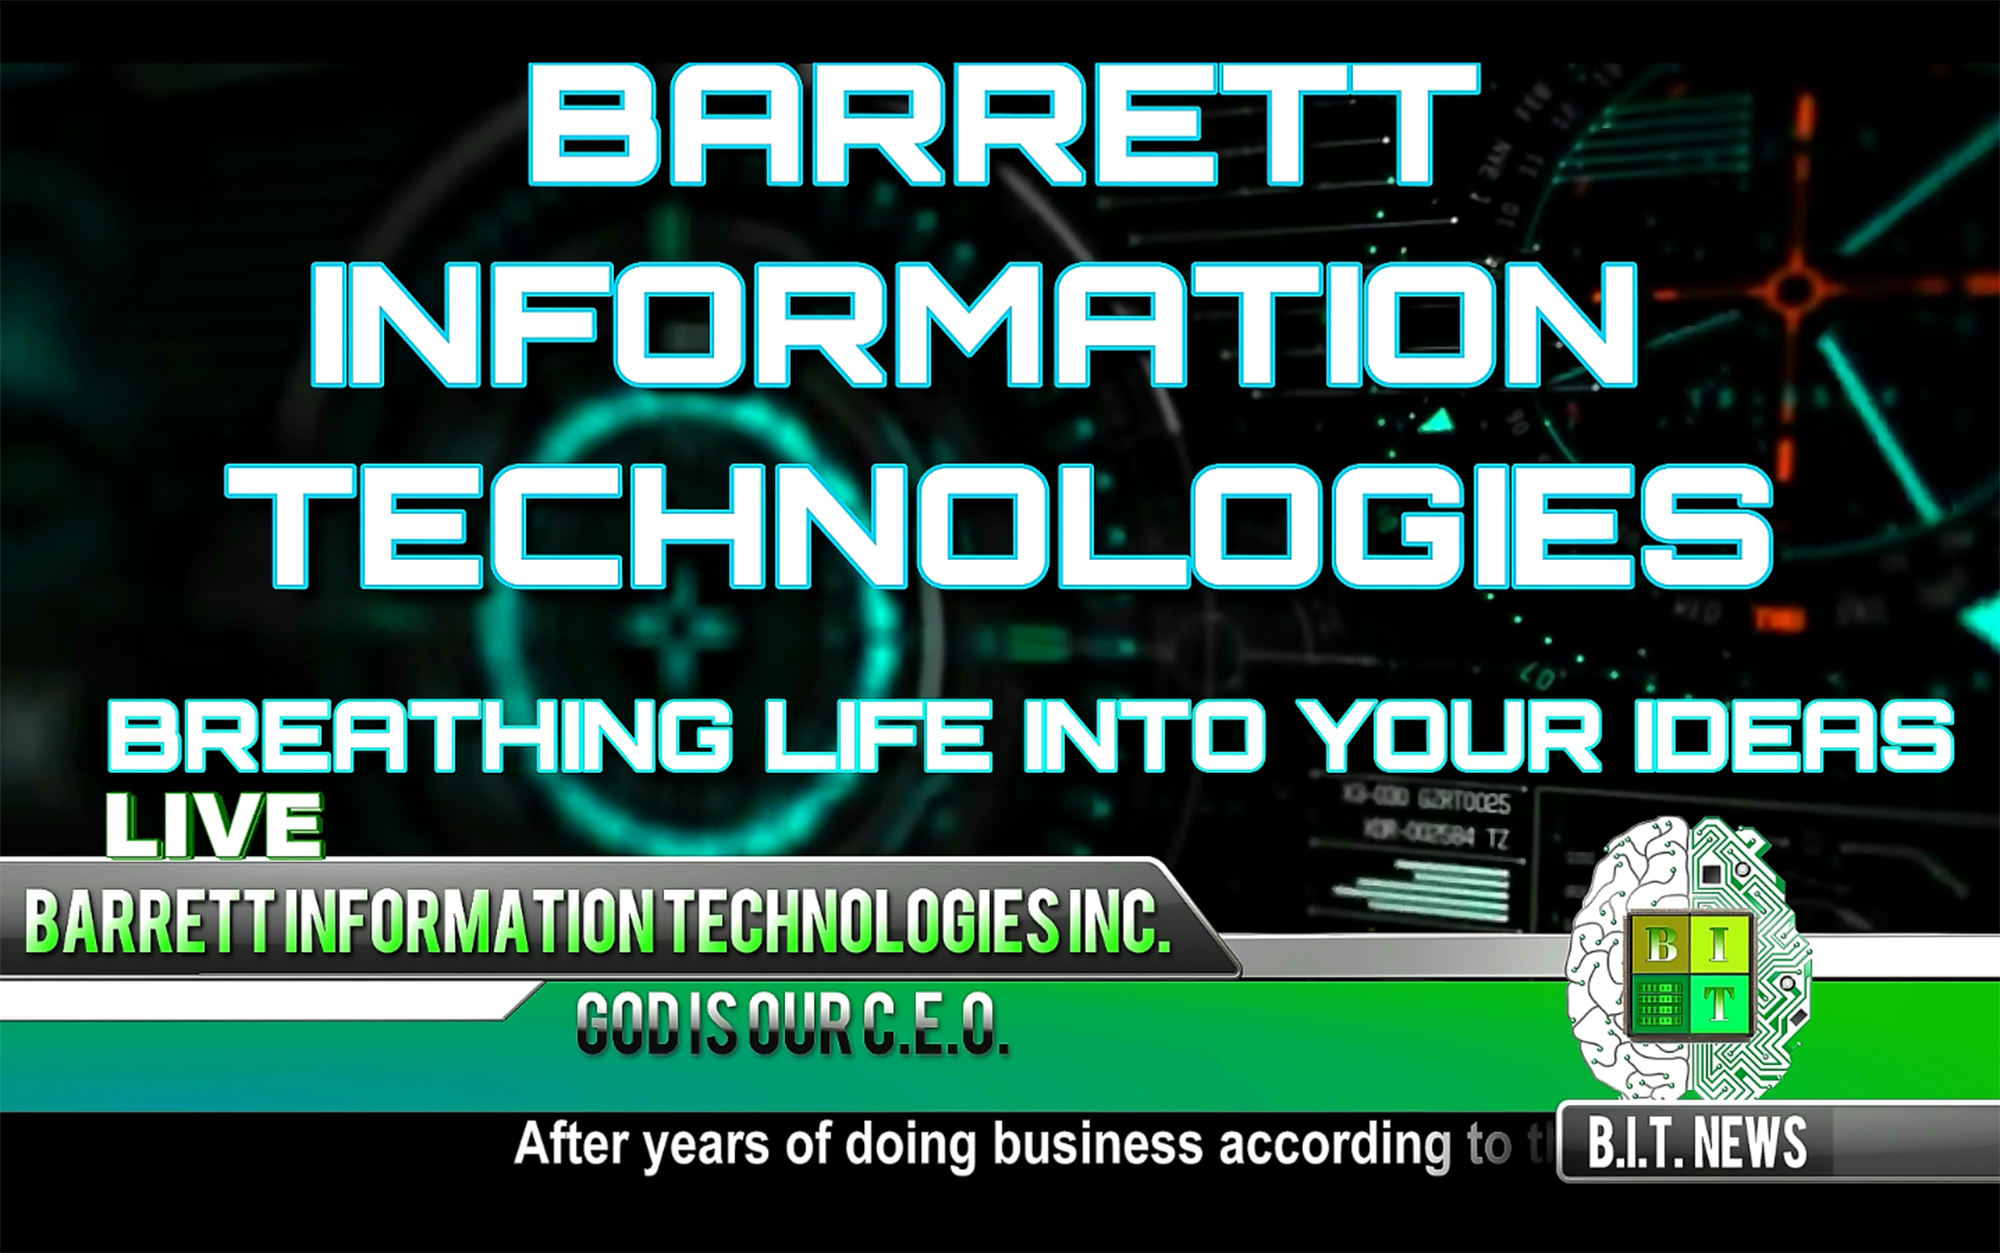 Barrett Information Technologies, Inc. - Breathing Life Into Your Ideas